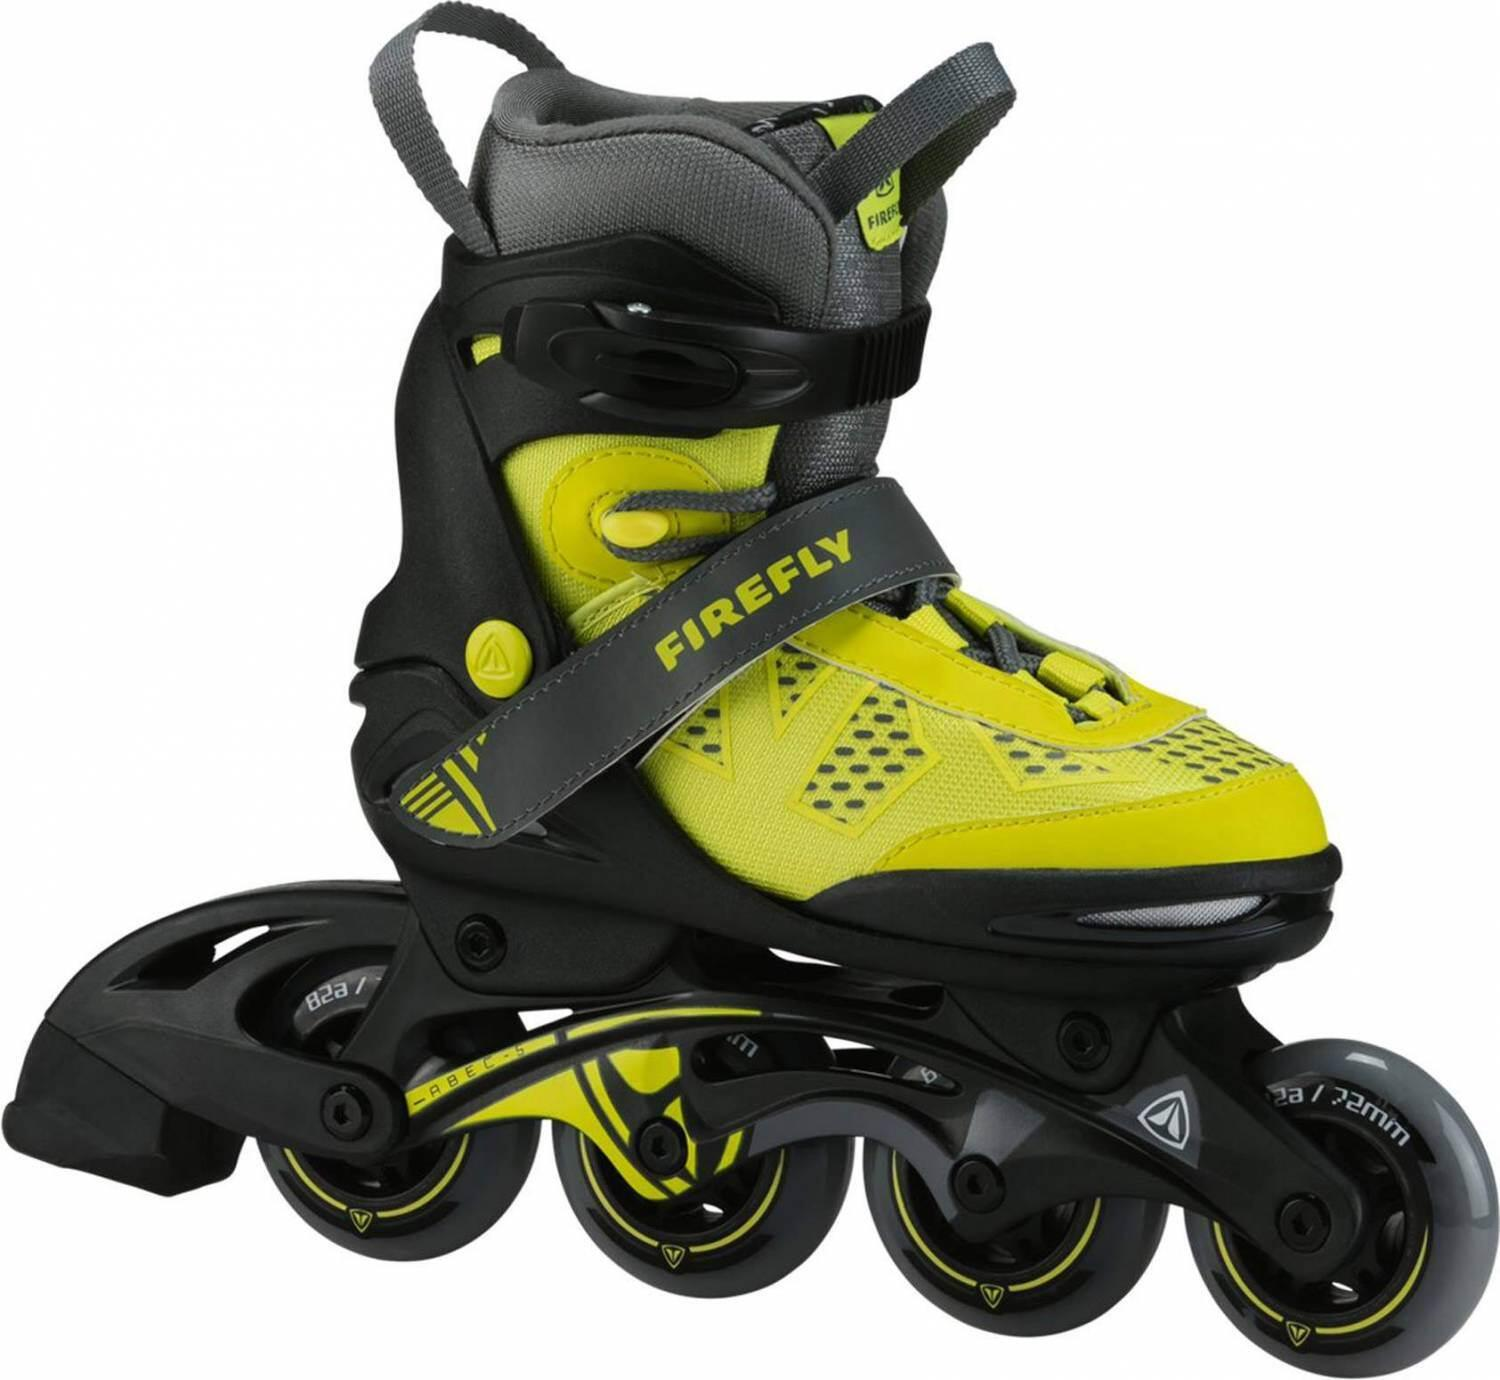 Inliner - Firefly Comp Adj Junior Inliner (Größe 37.0 40.0 (Rollen 76 mm), 900 yellow grey black) - Onlineshop